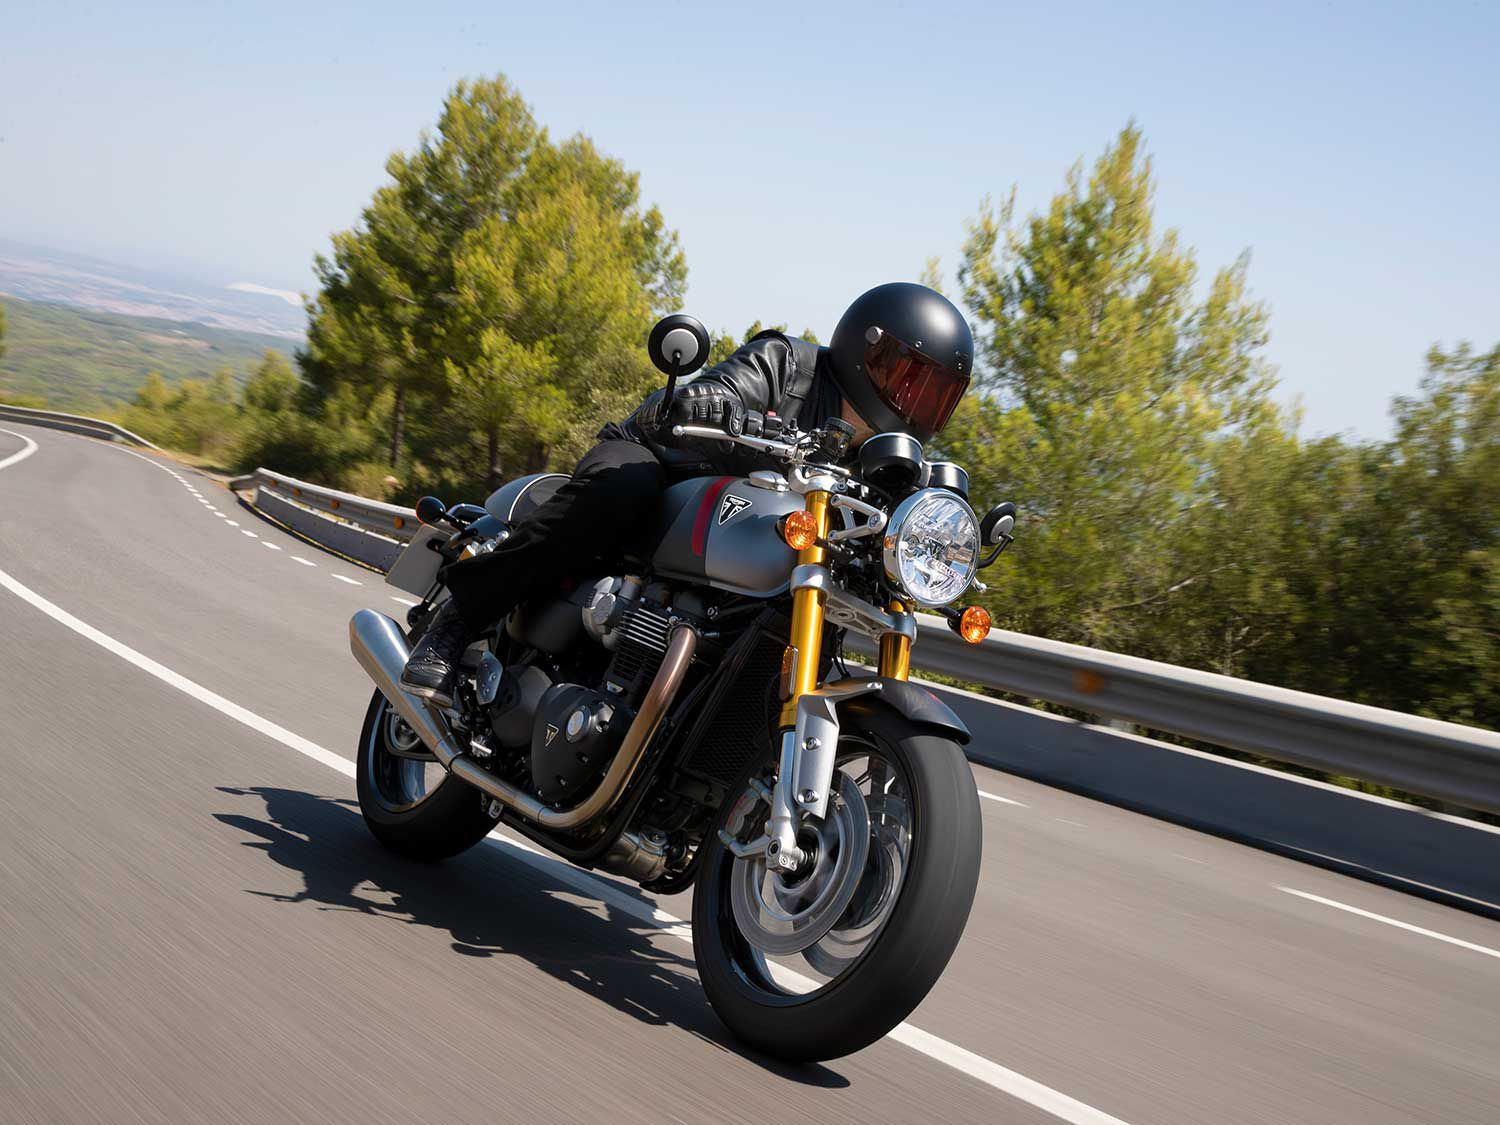 The 2020 Triumph Thruxton RS brings power and performance to a new level.